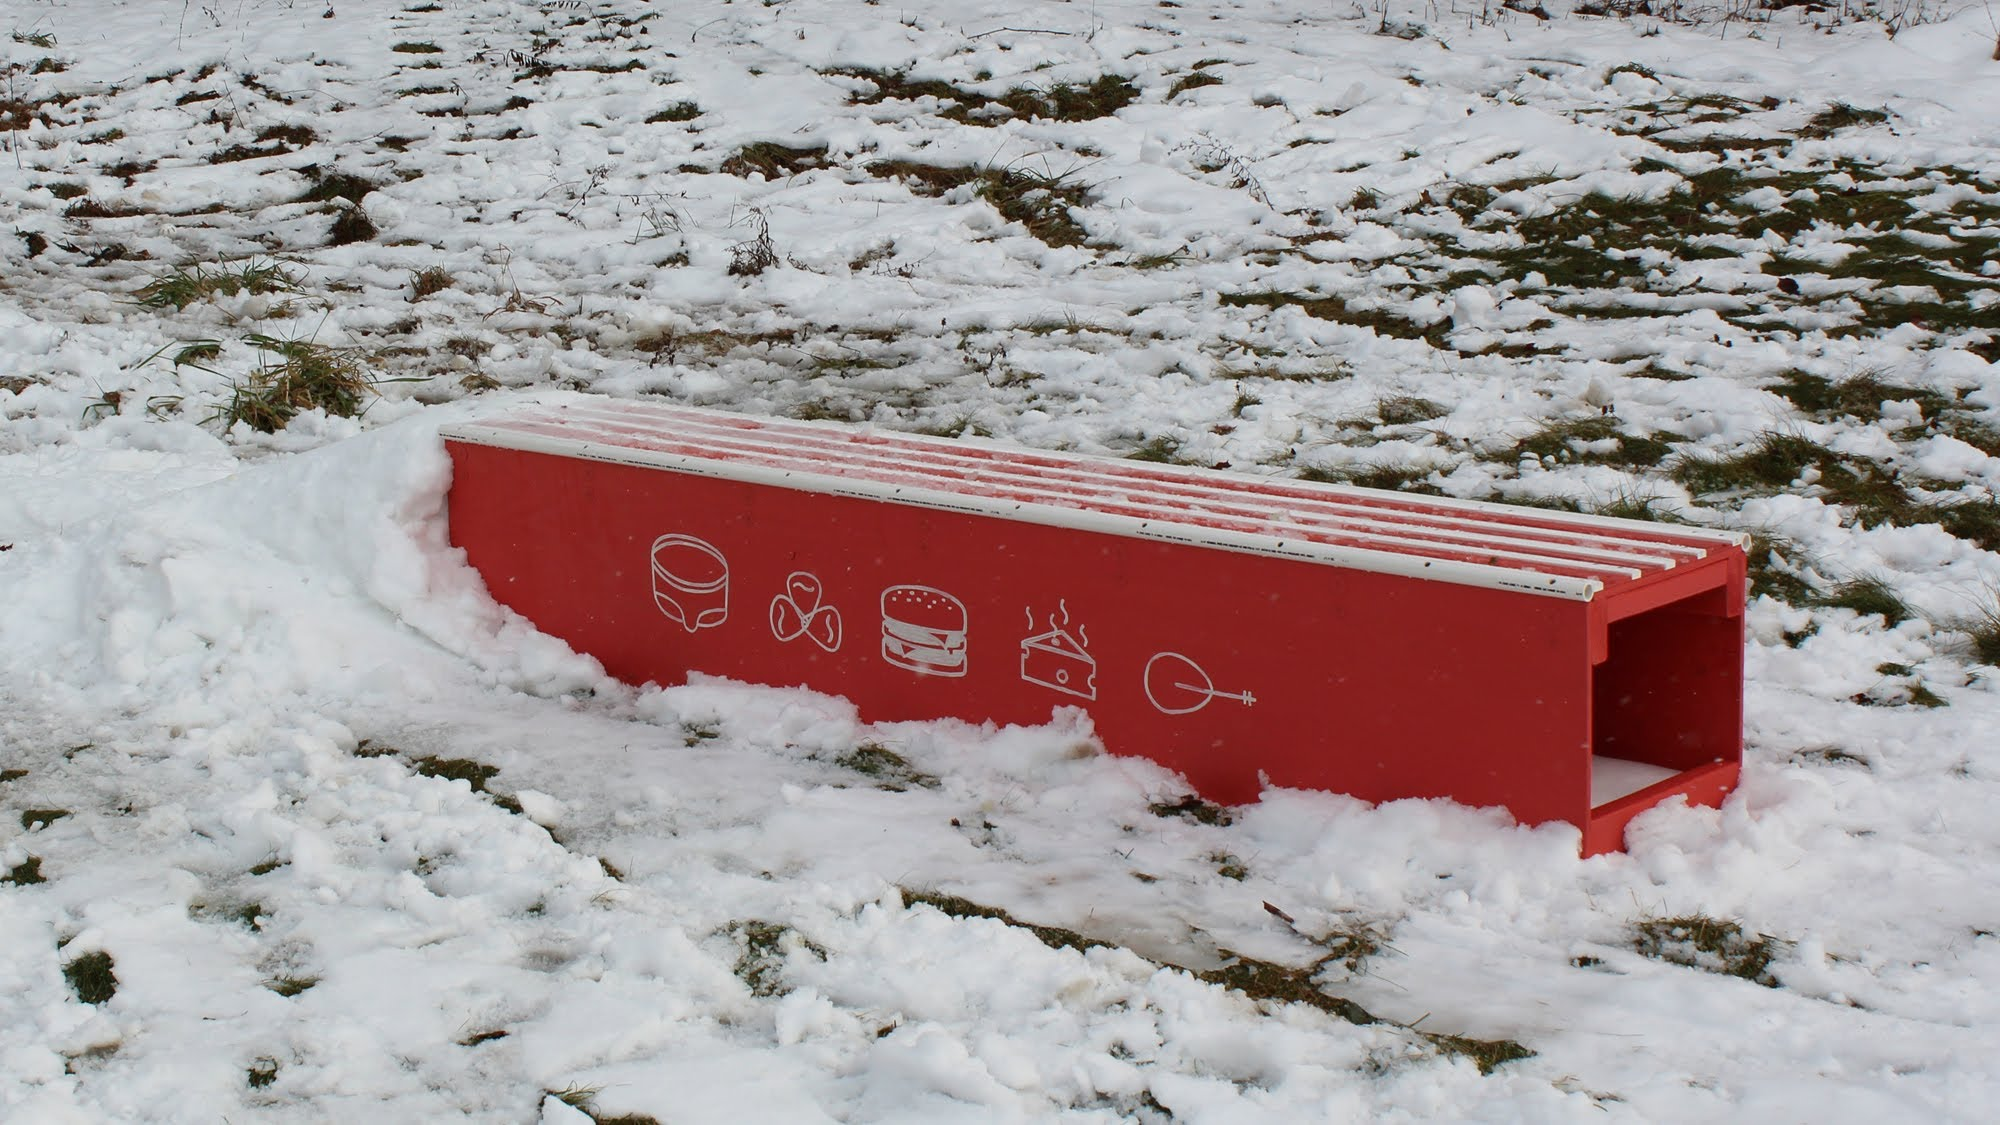 How to make, build a snowboard box